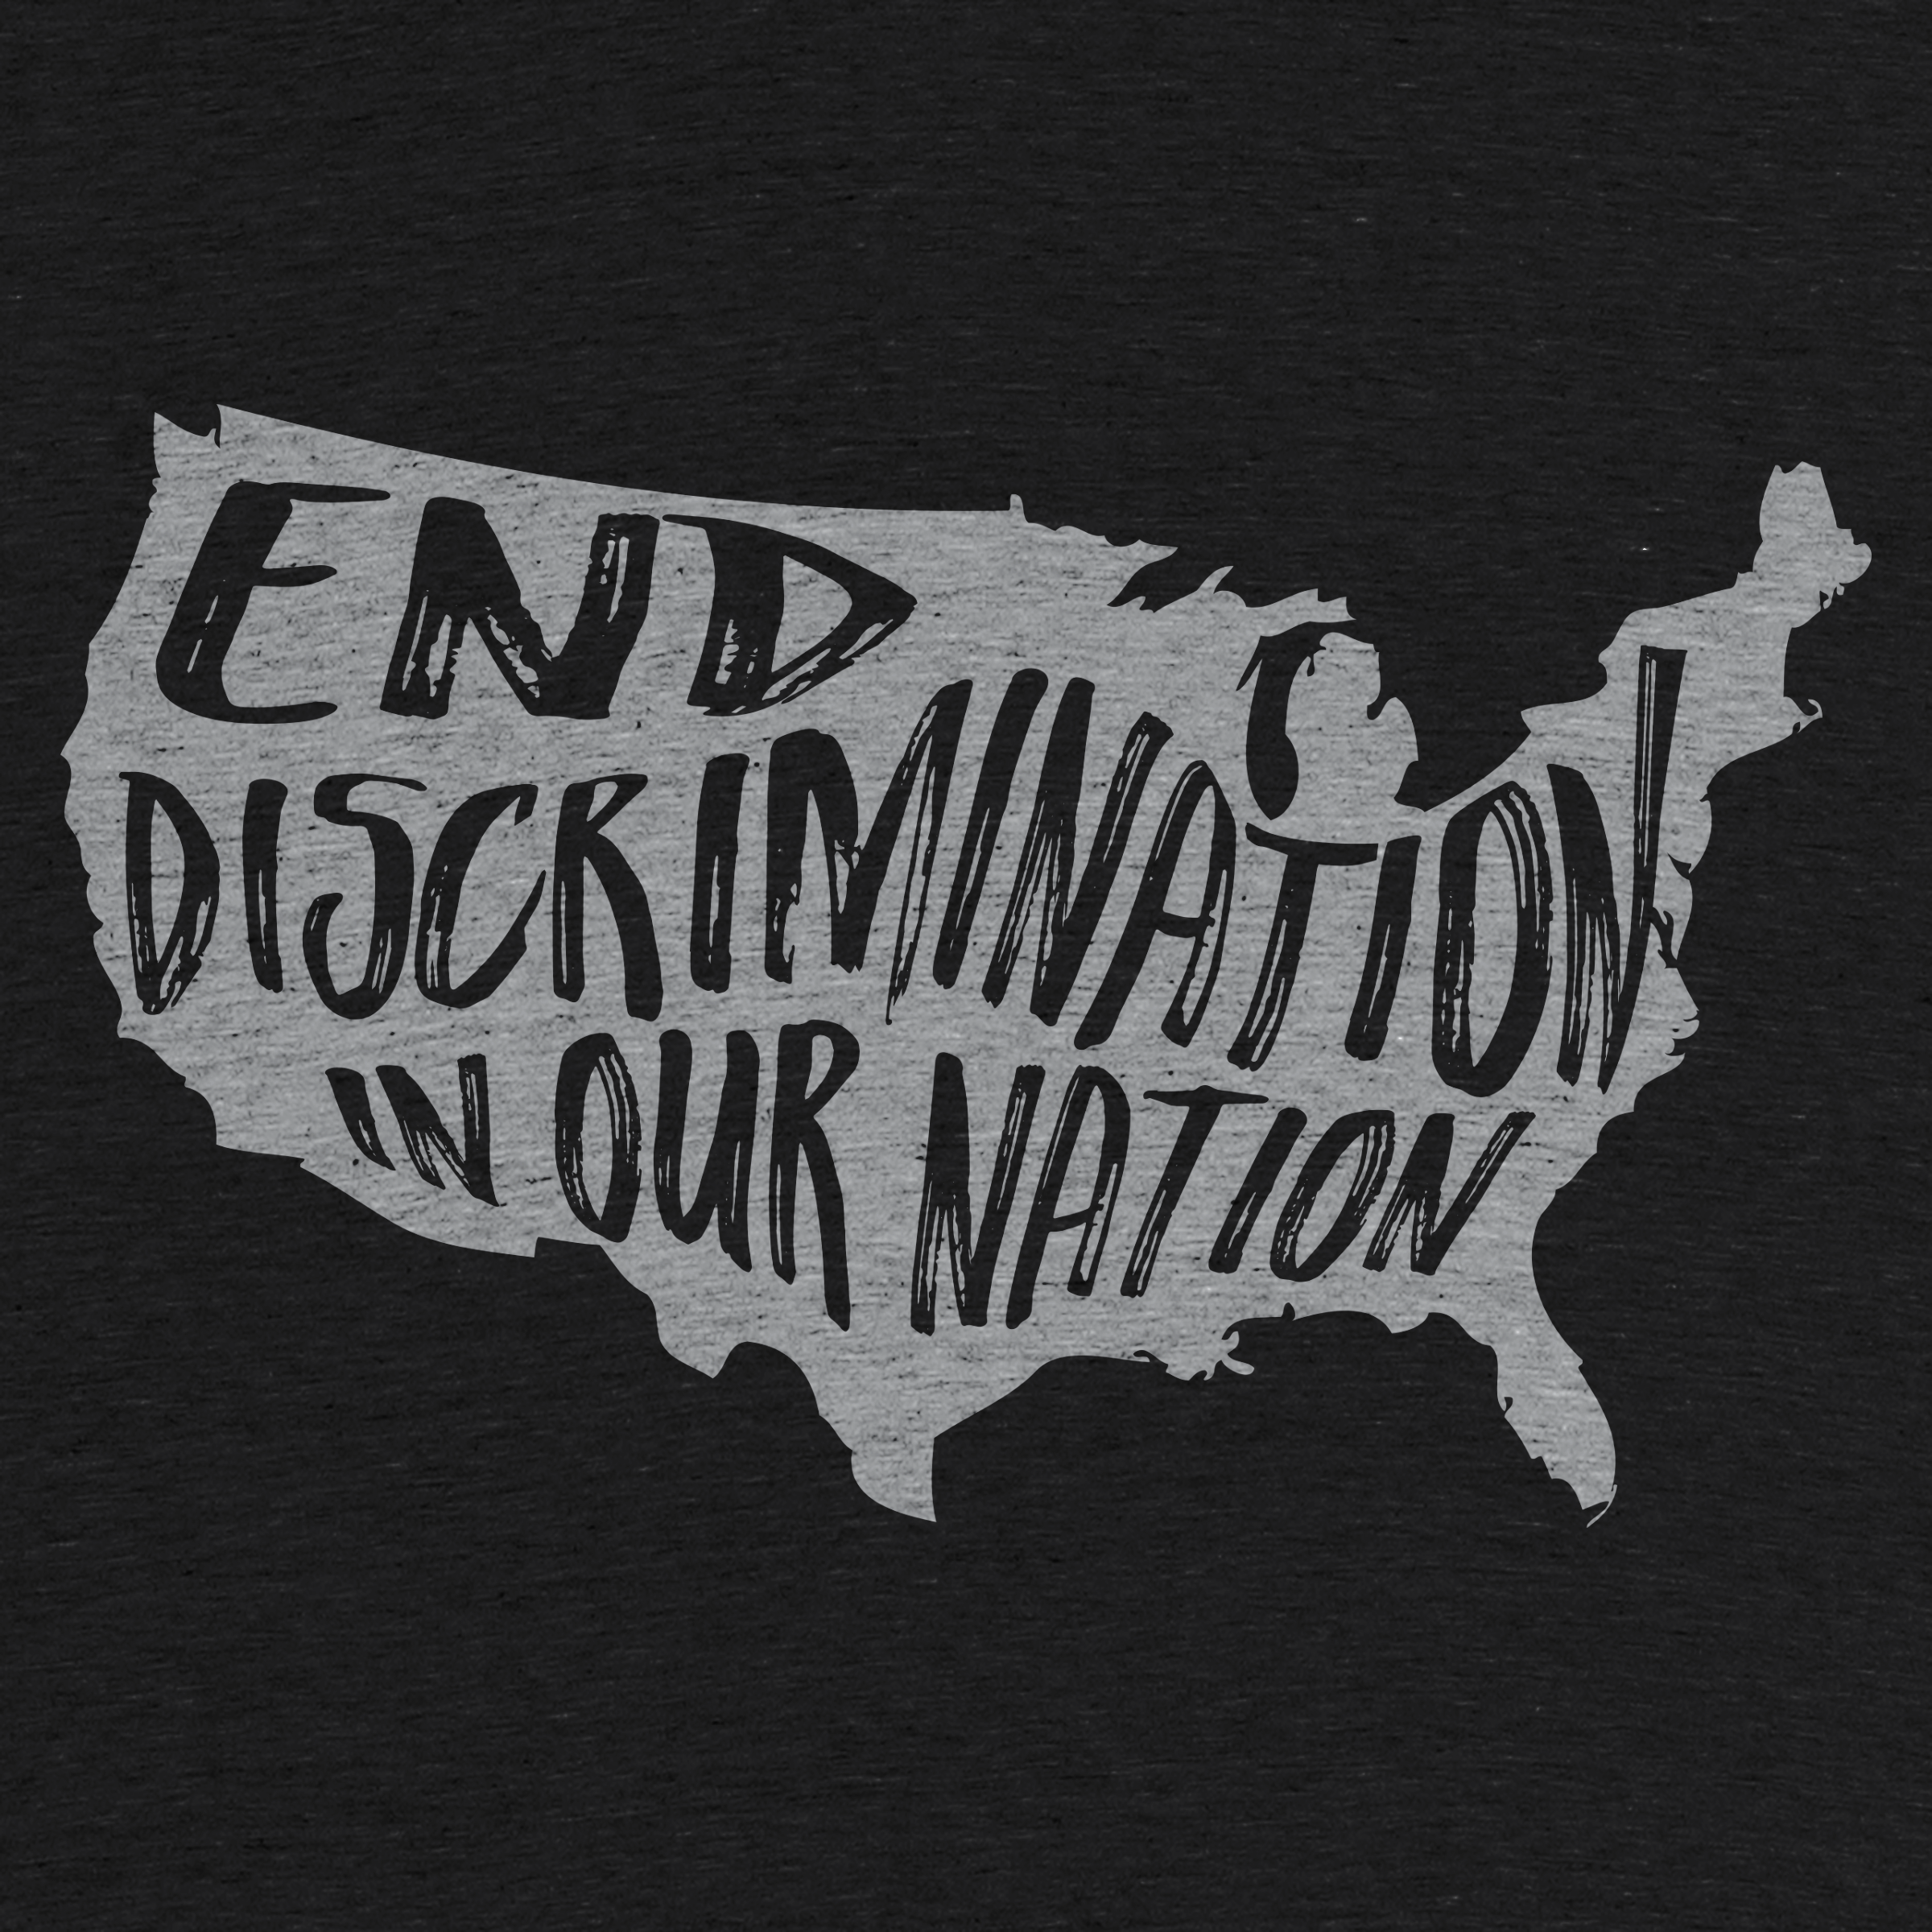 End Discrimination in Our Nation